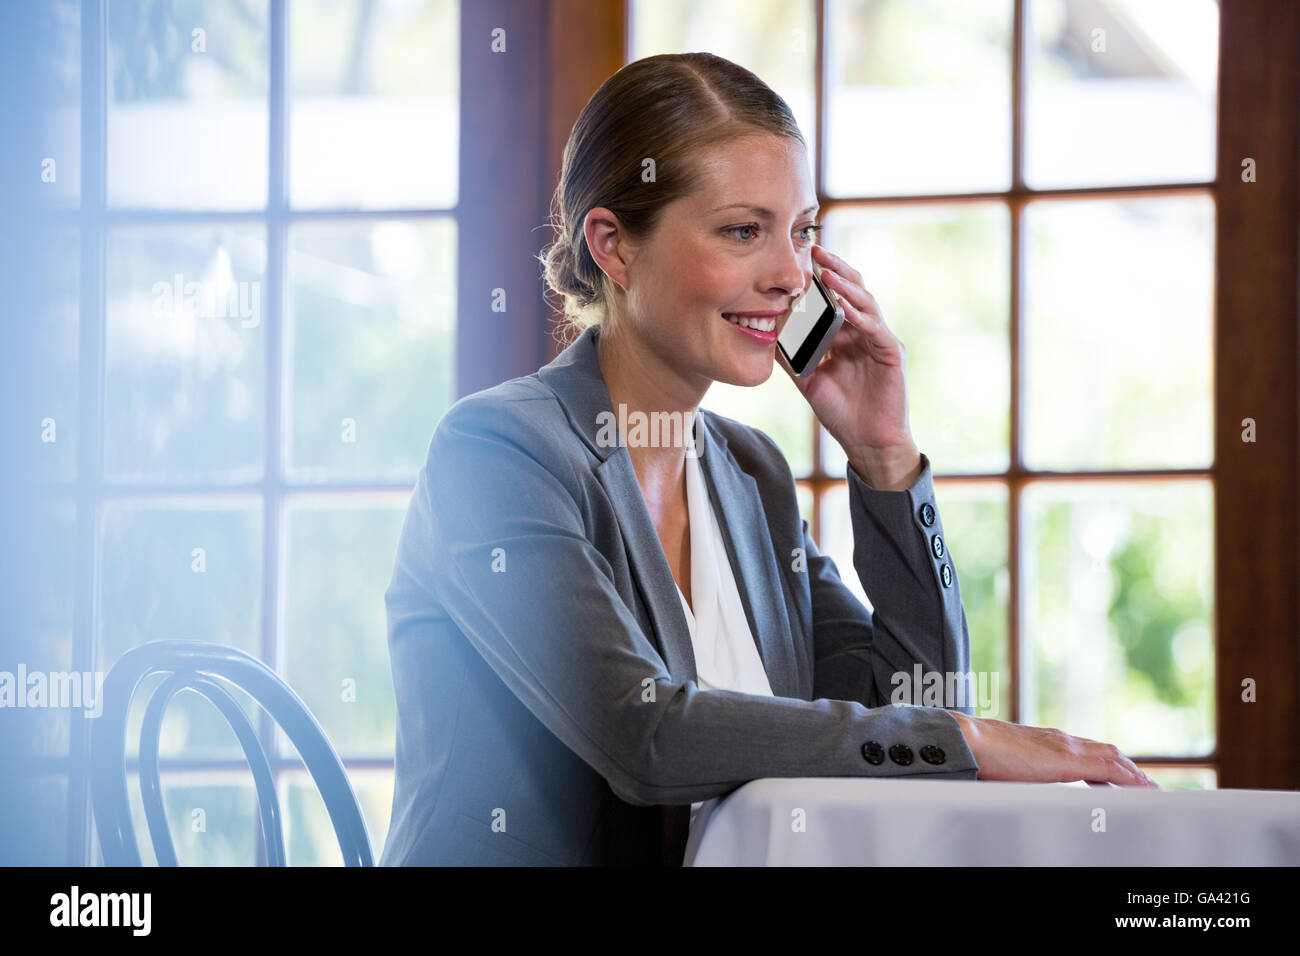 Woman making a phone call - Stock Image